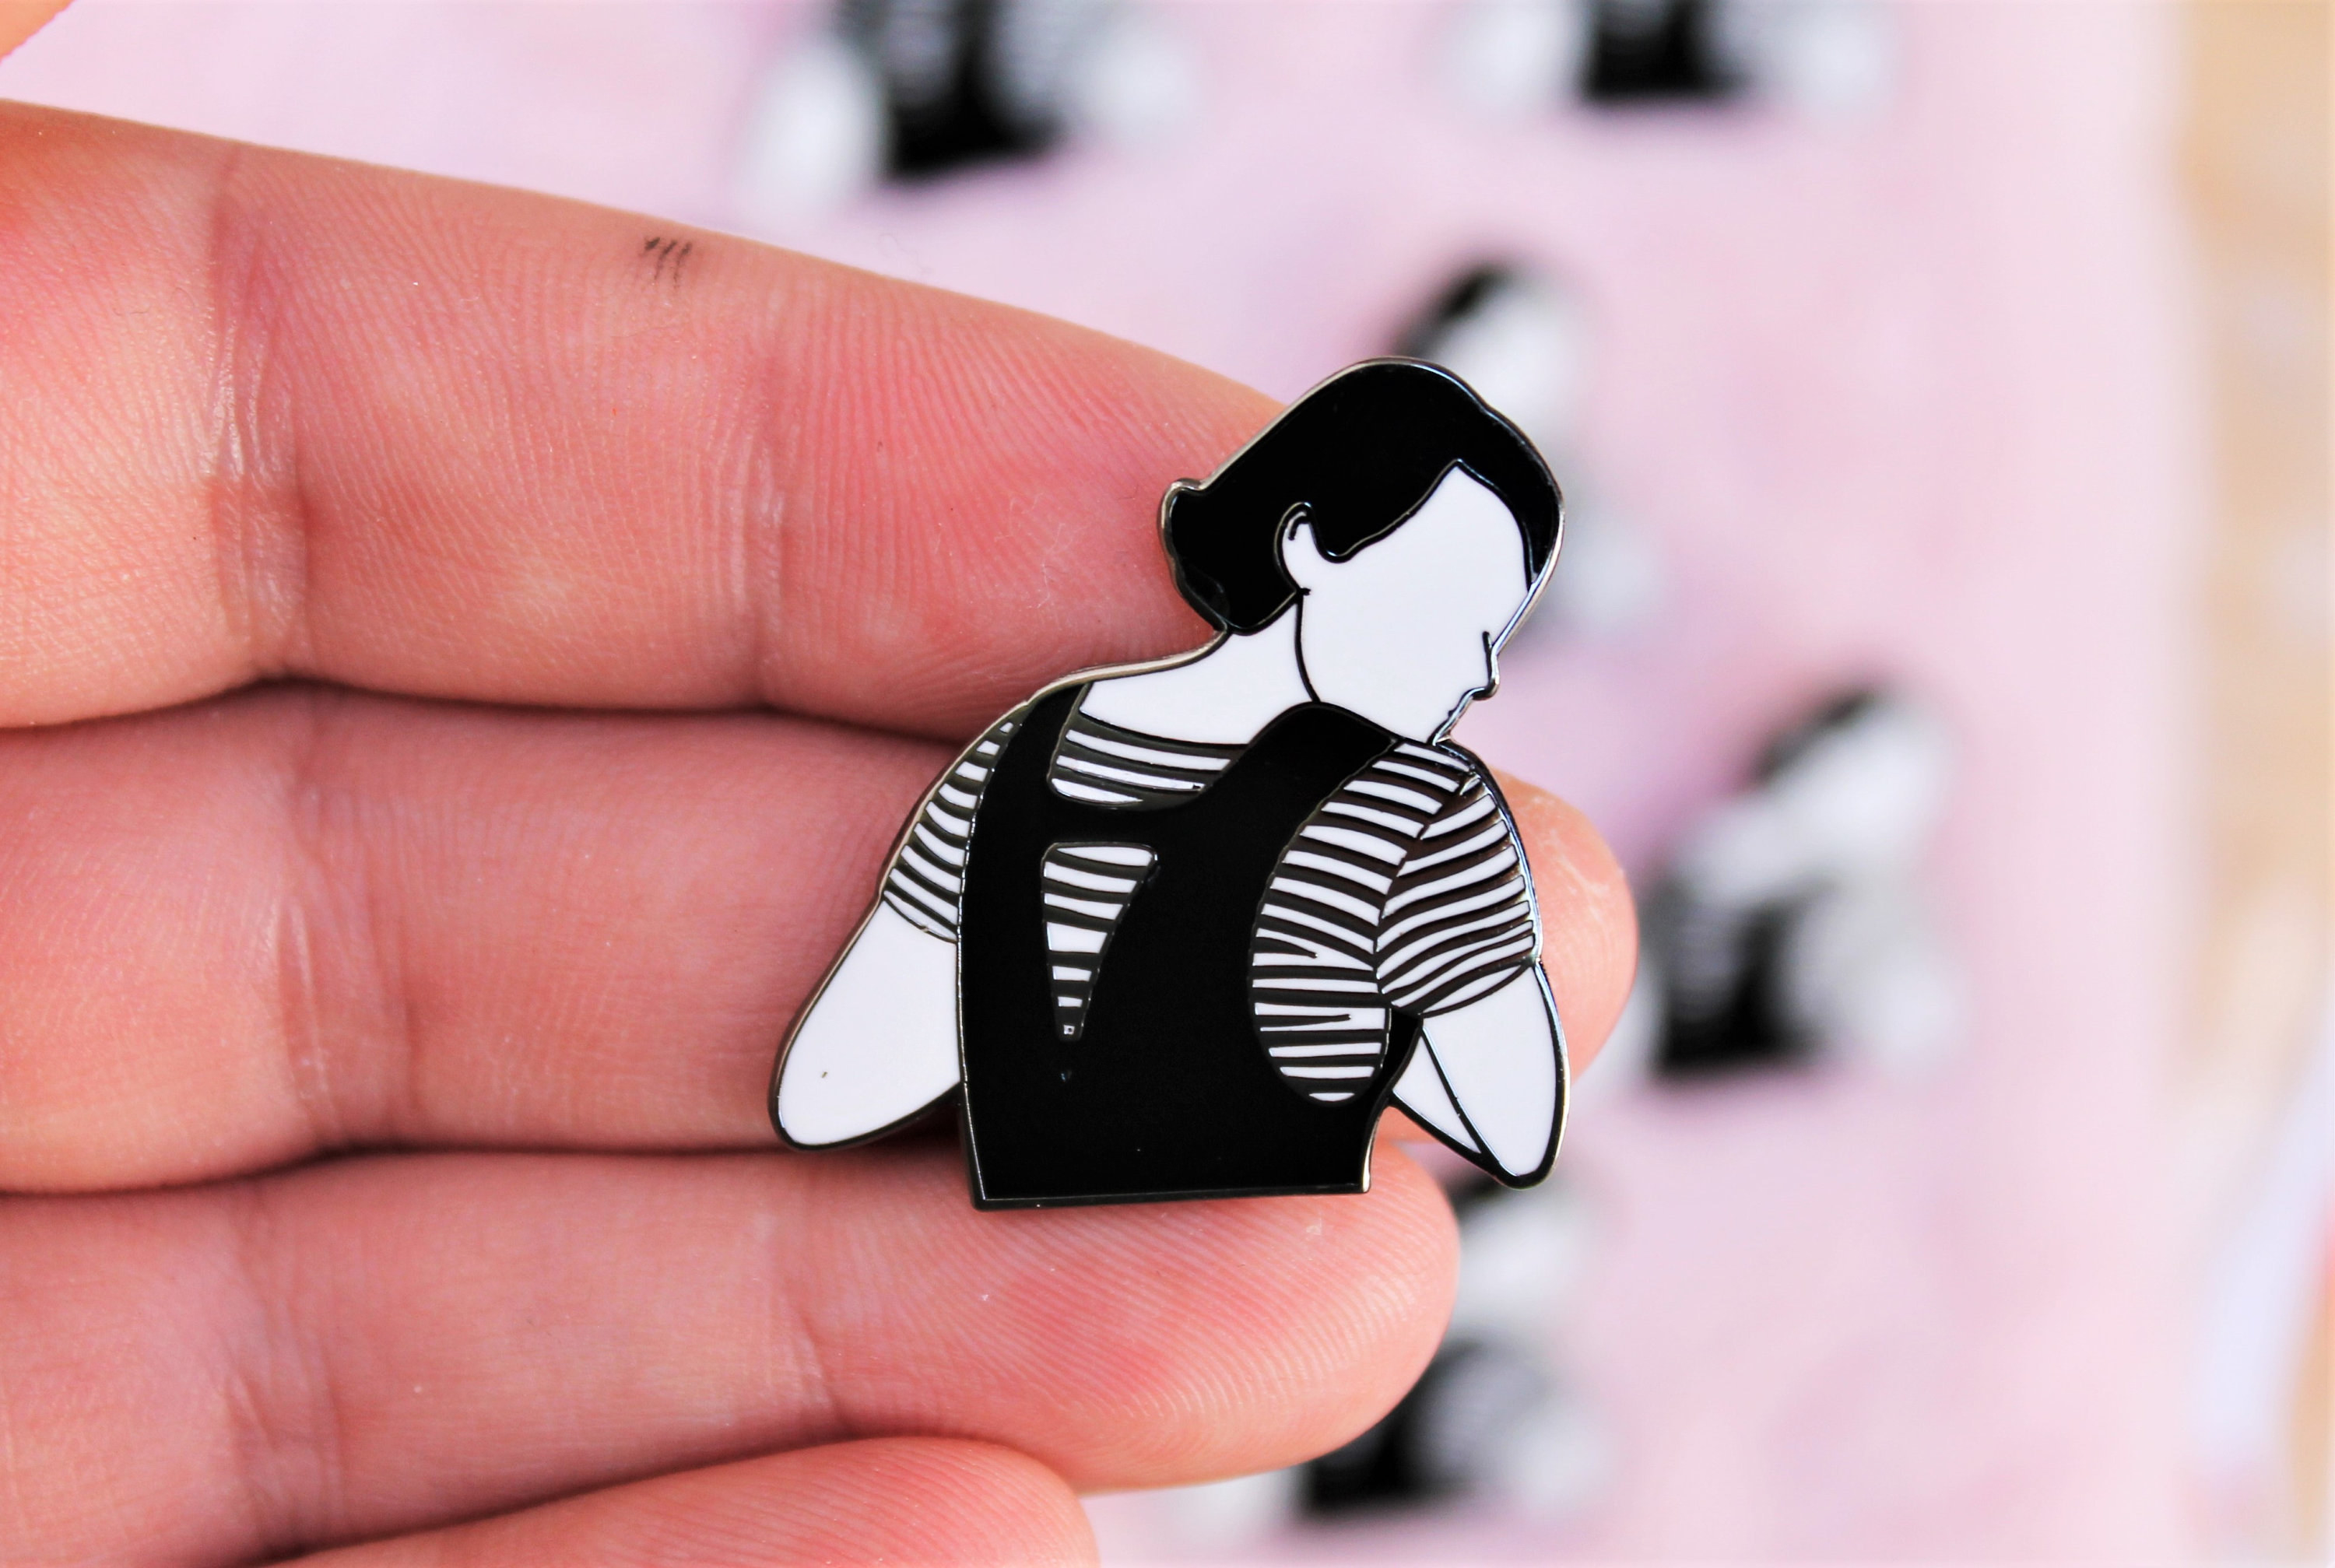 The black and white pin that looks like Fleabag turning looking over her shoulder